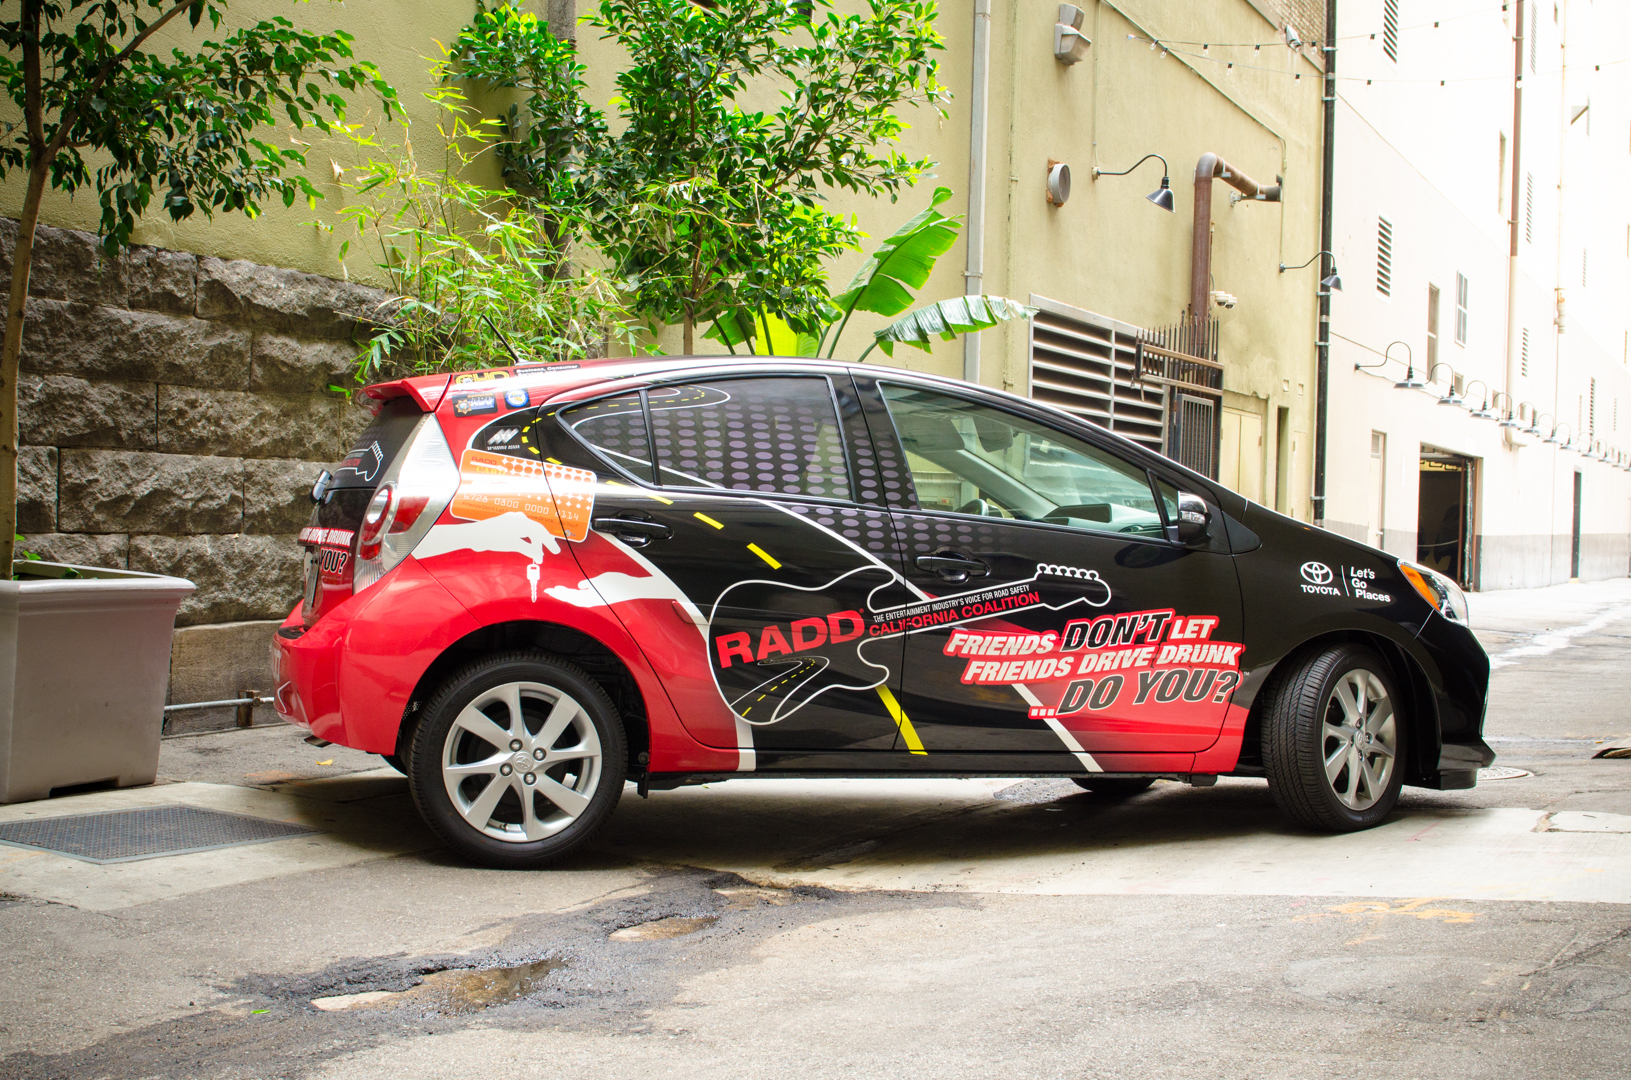 The Toyota Prius C, RADD Car made an appearance at the event. (Photo: Business Wire)